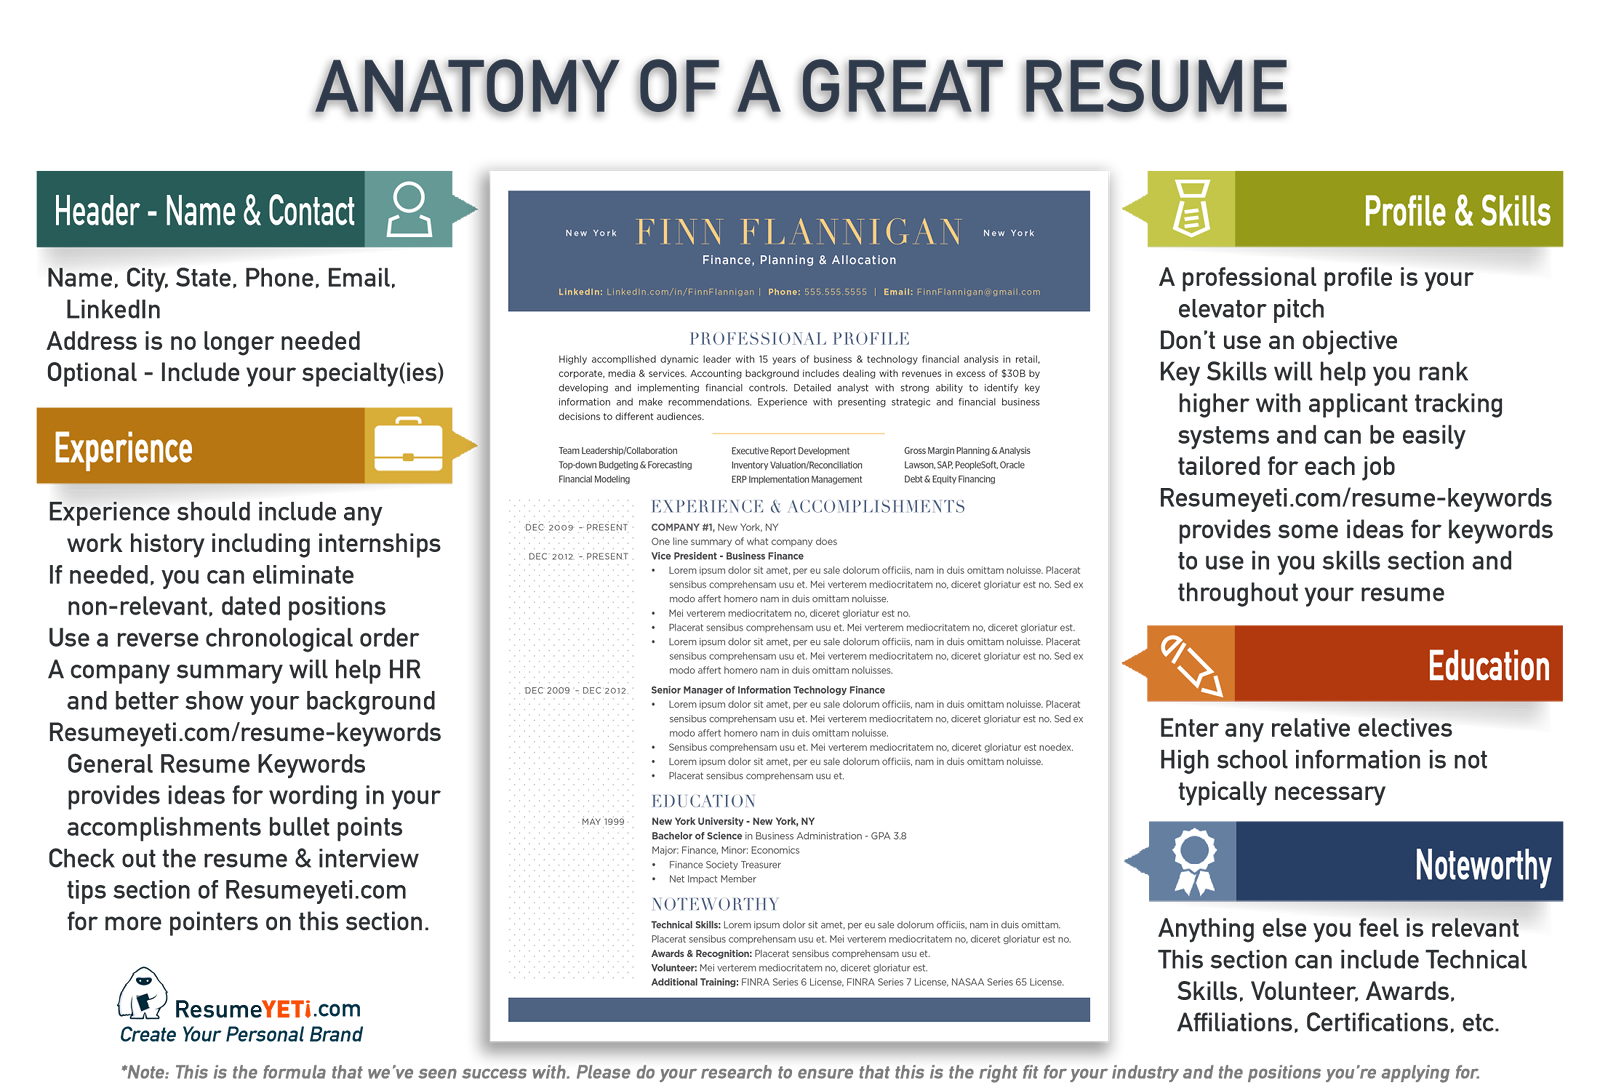 Anatomy Of A Great Resume